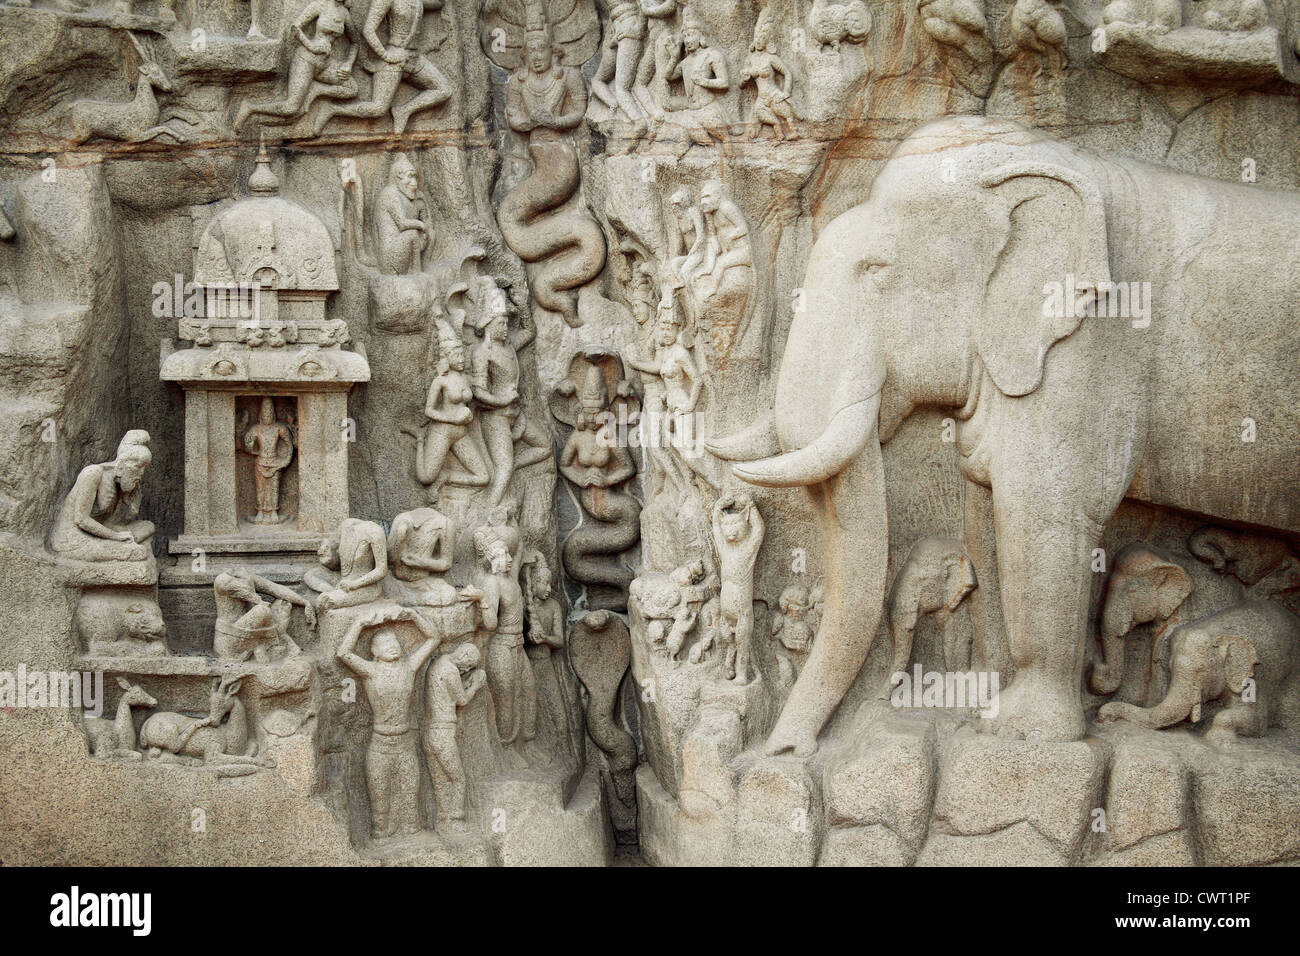 Arjuna's Penance - Descent of the Ganges, Bas-relief in Mahabalipuram, India - Stock Image